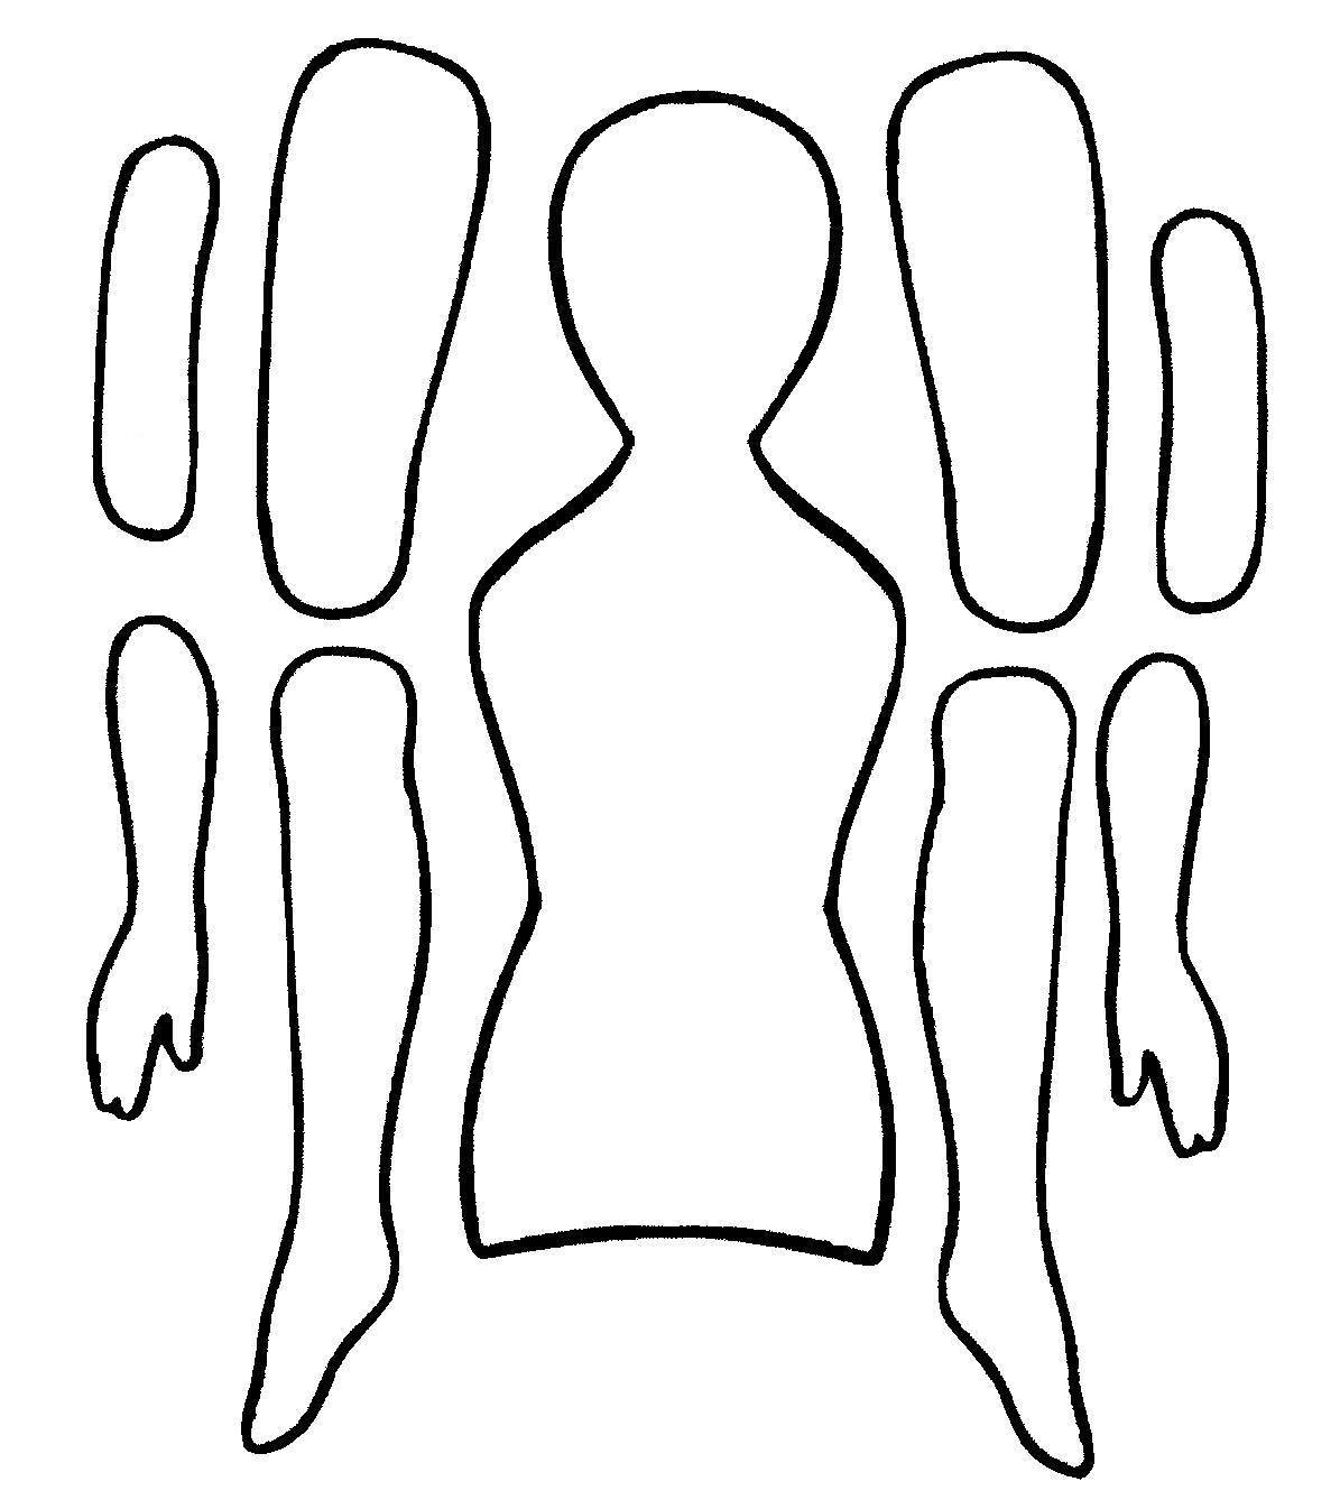 Template For Action Figure Or Haring Projects I Could